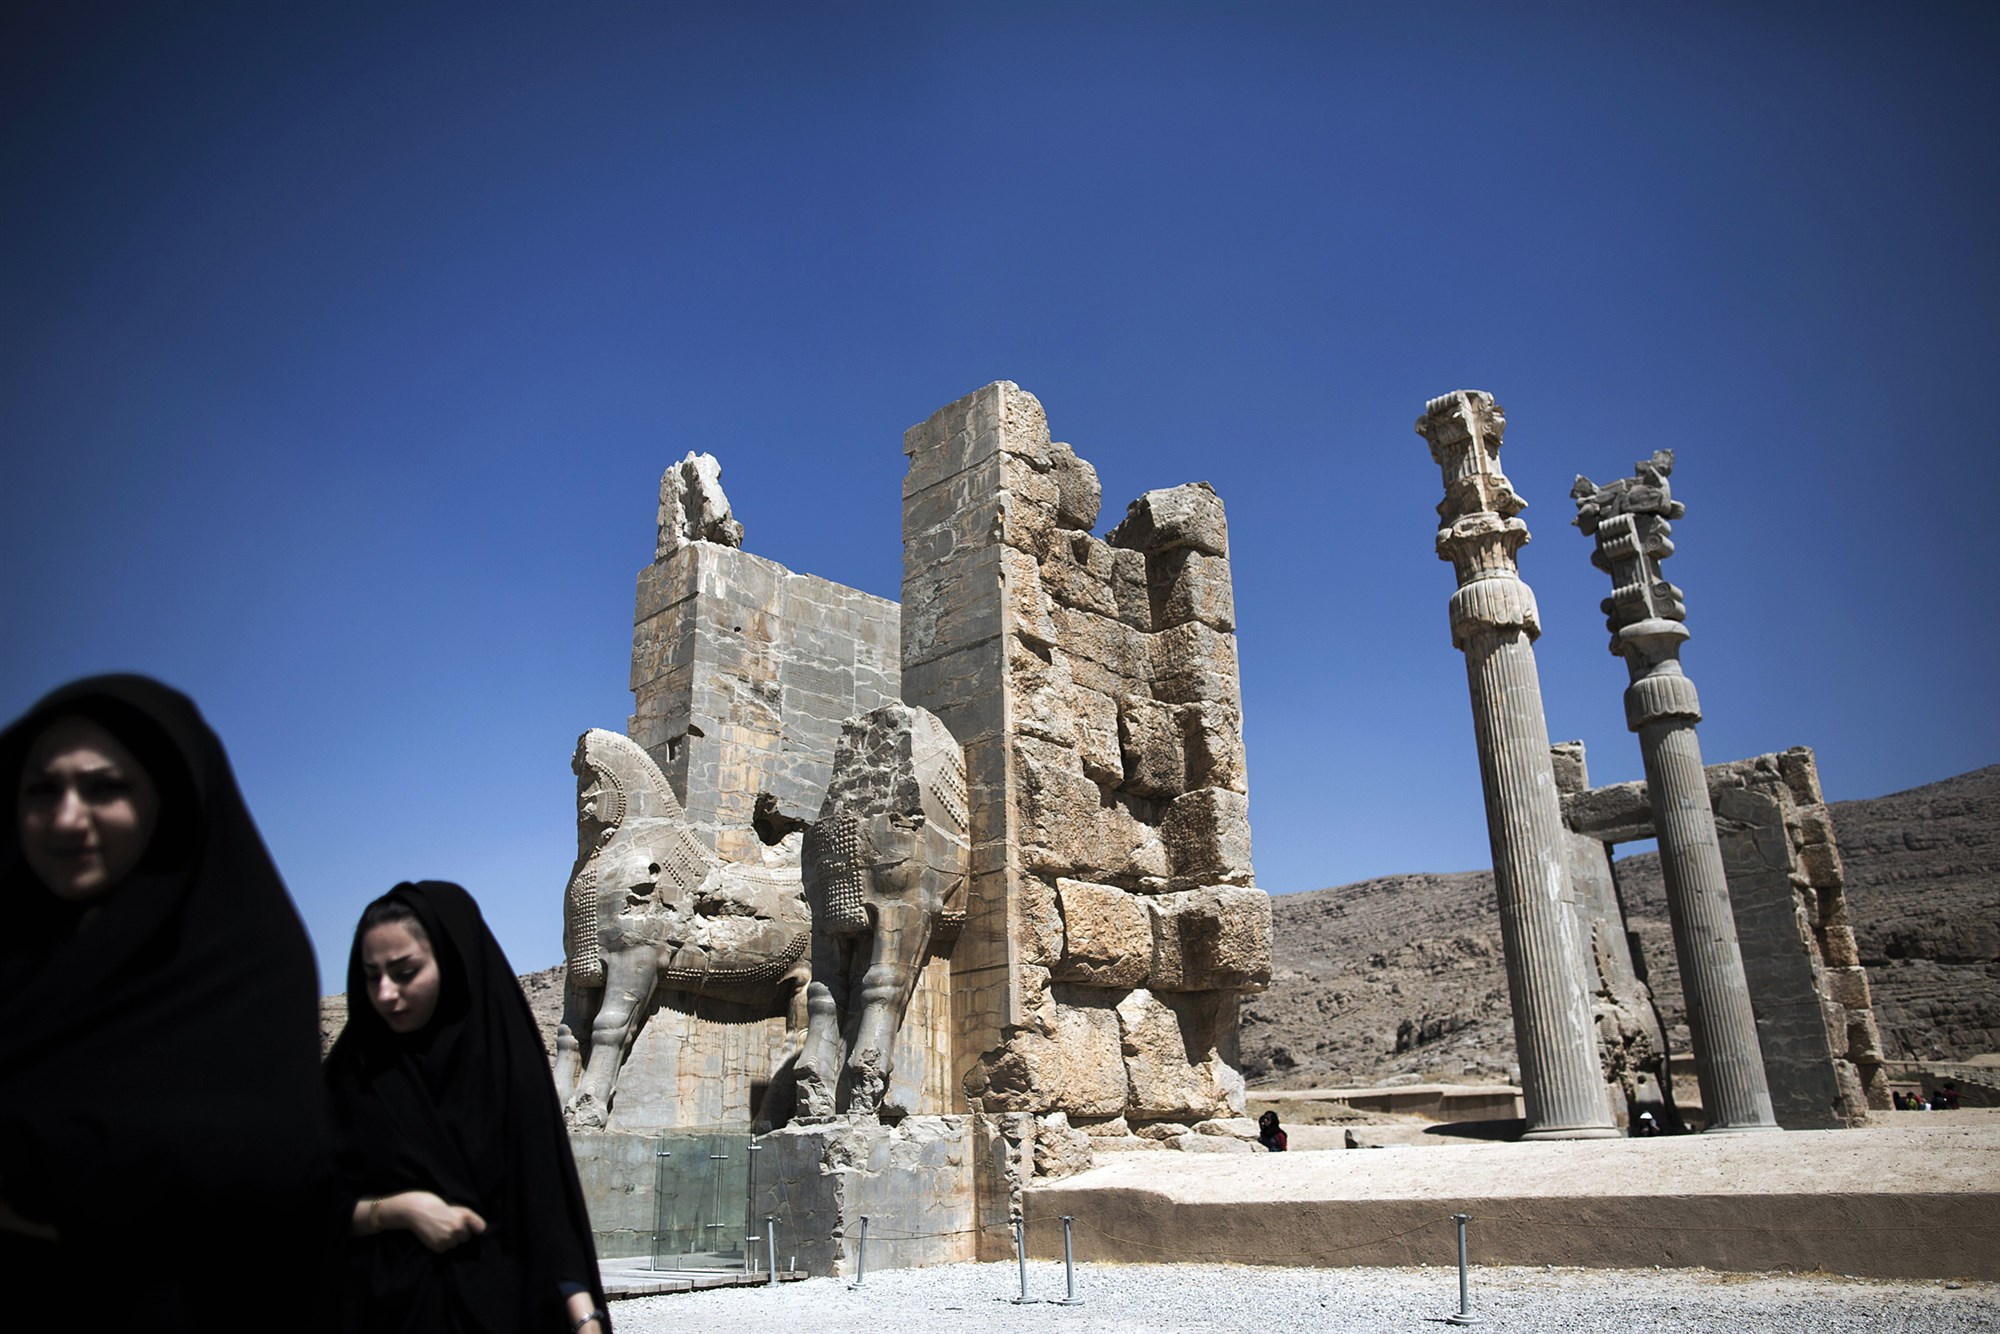 Trump's Twitter Threats Against Iran Cultural Sites Borrow From the ISIS Playbook